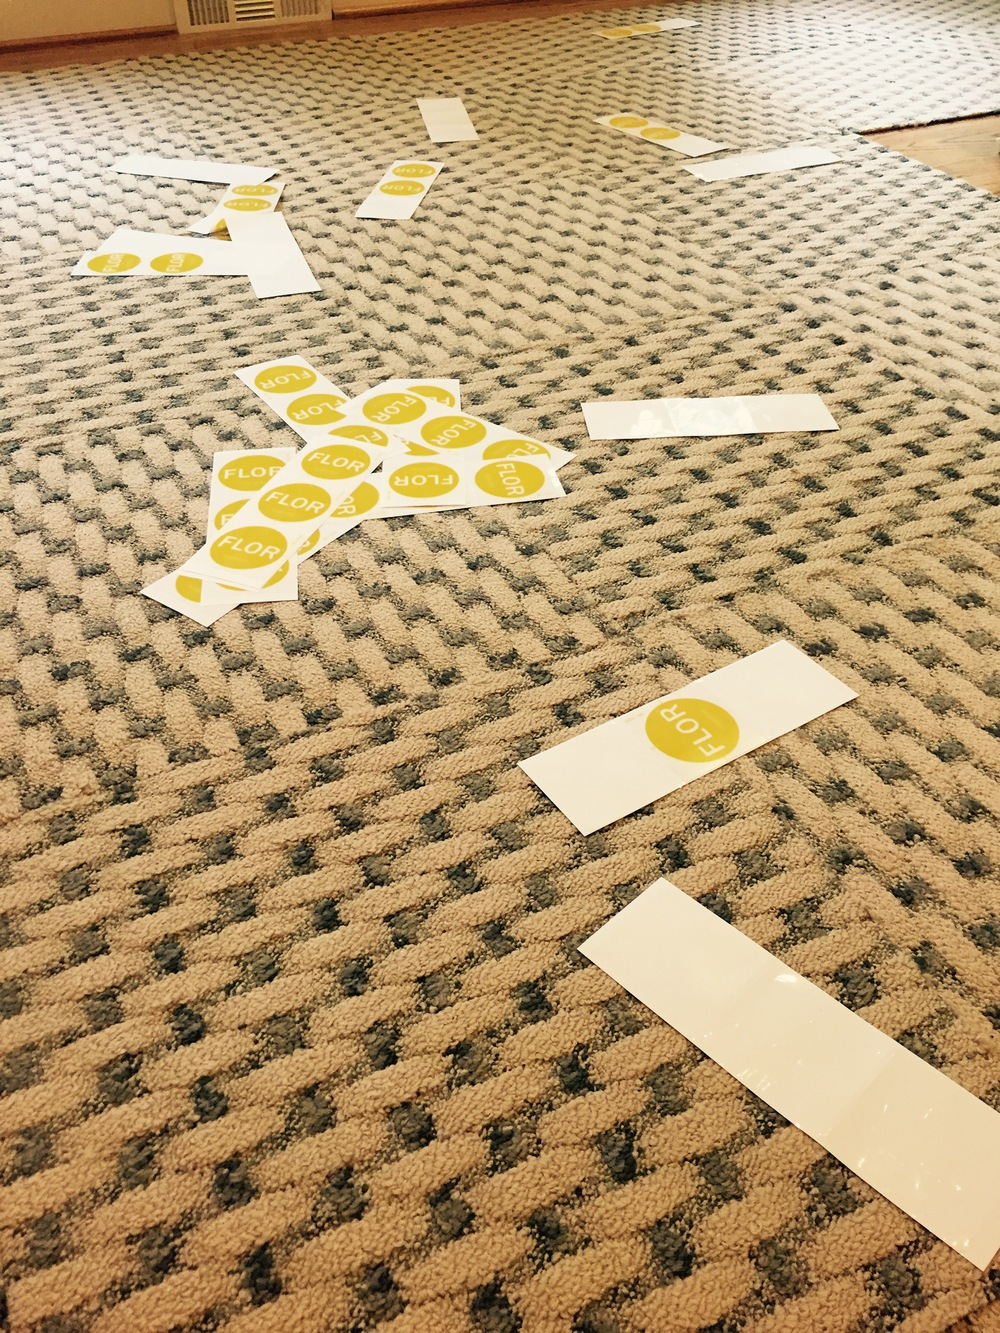 I Have Been Interested In Trying FLOR Carpet Squares For A Long Time And Finally Found An Opportunity While Redesigning My Dining Room